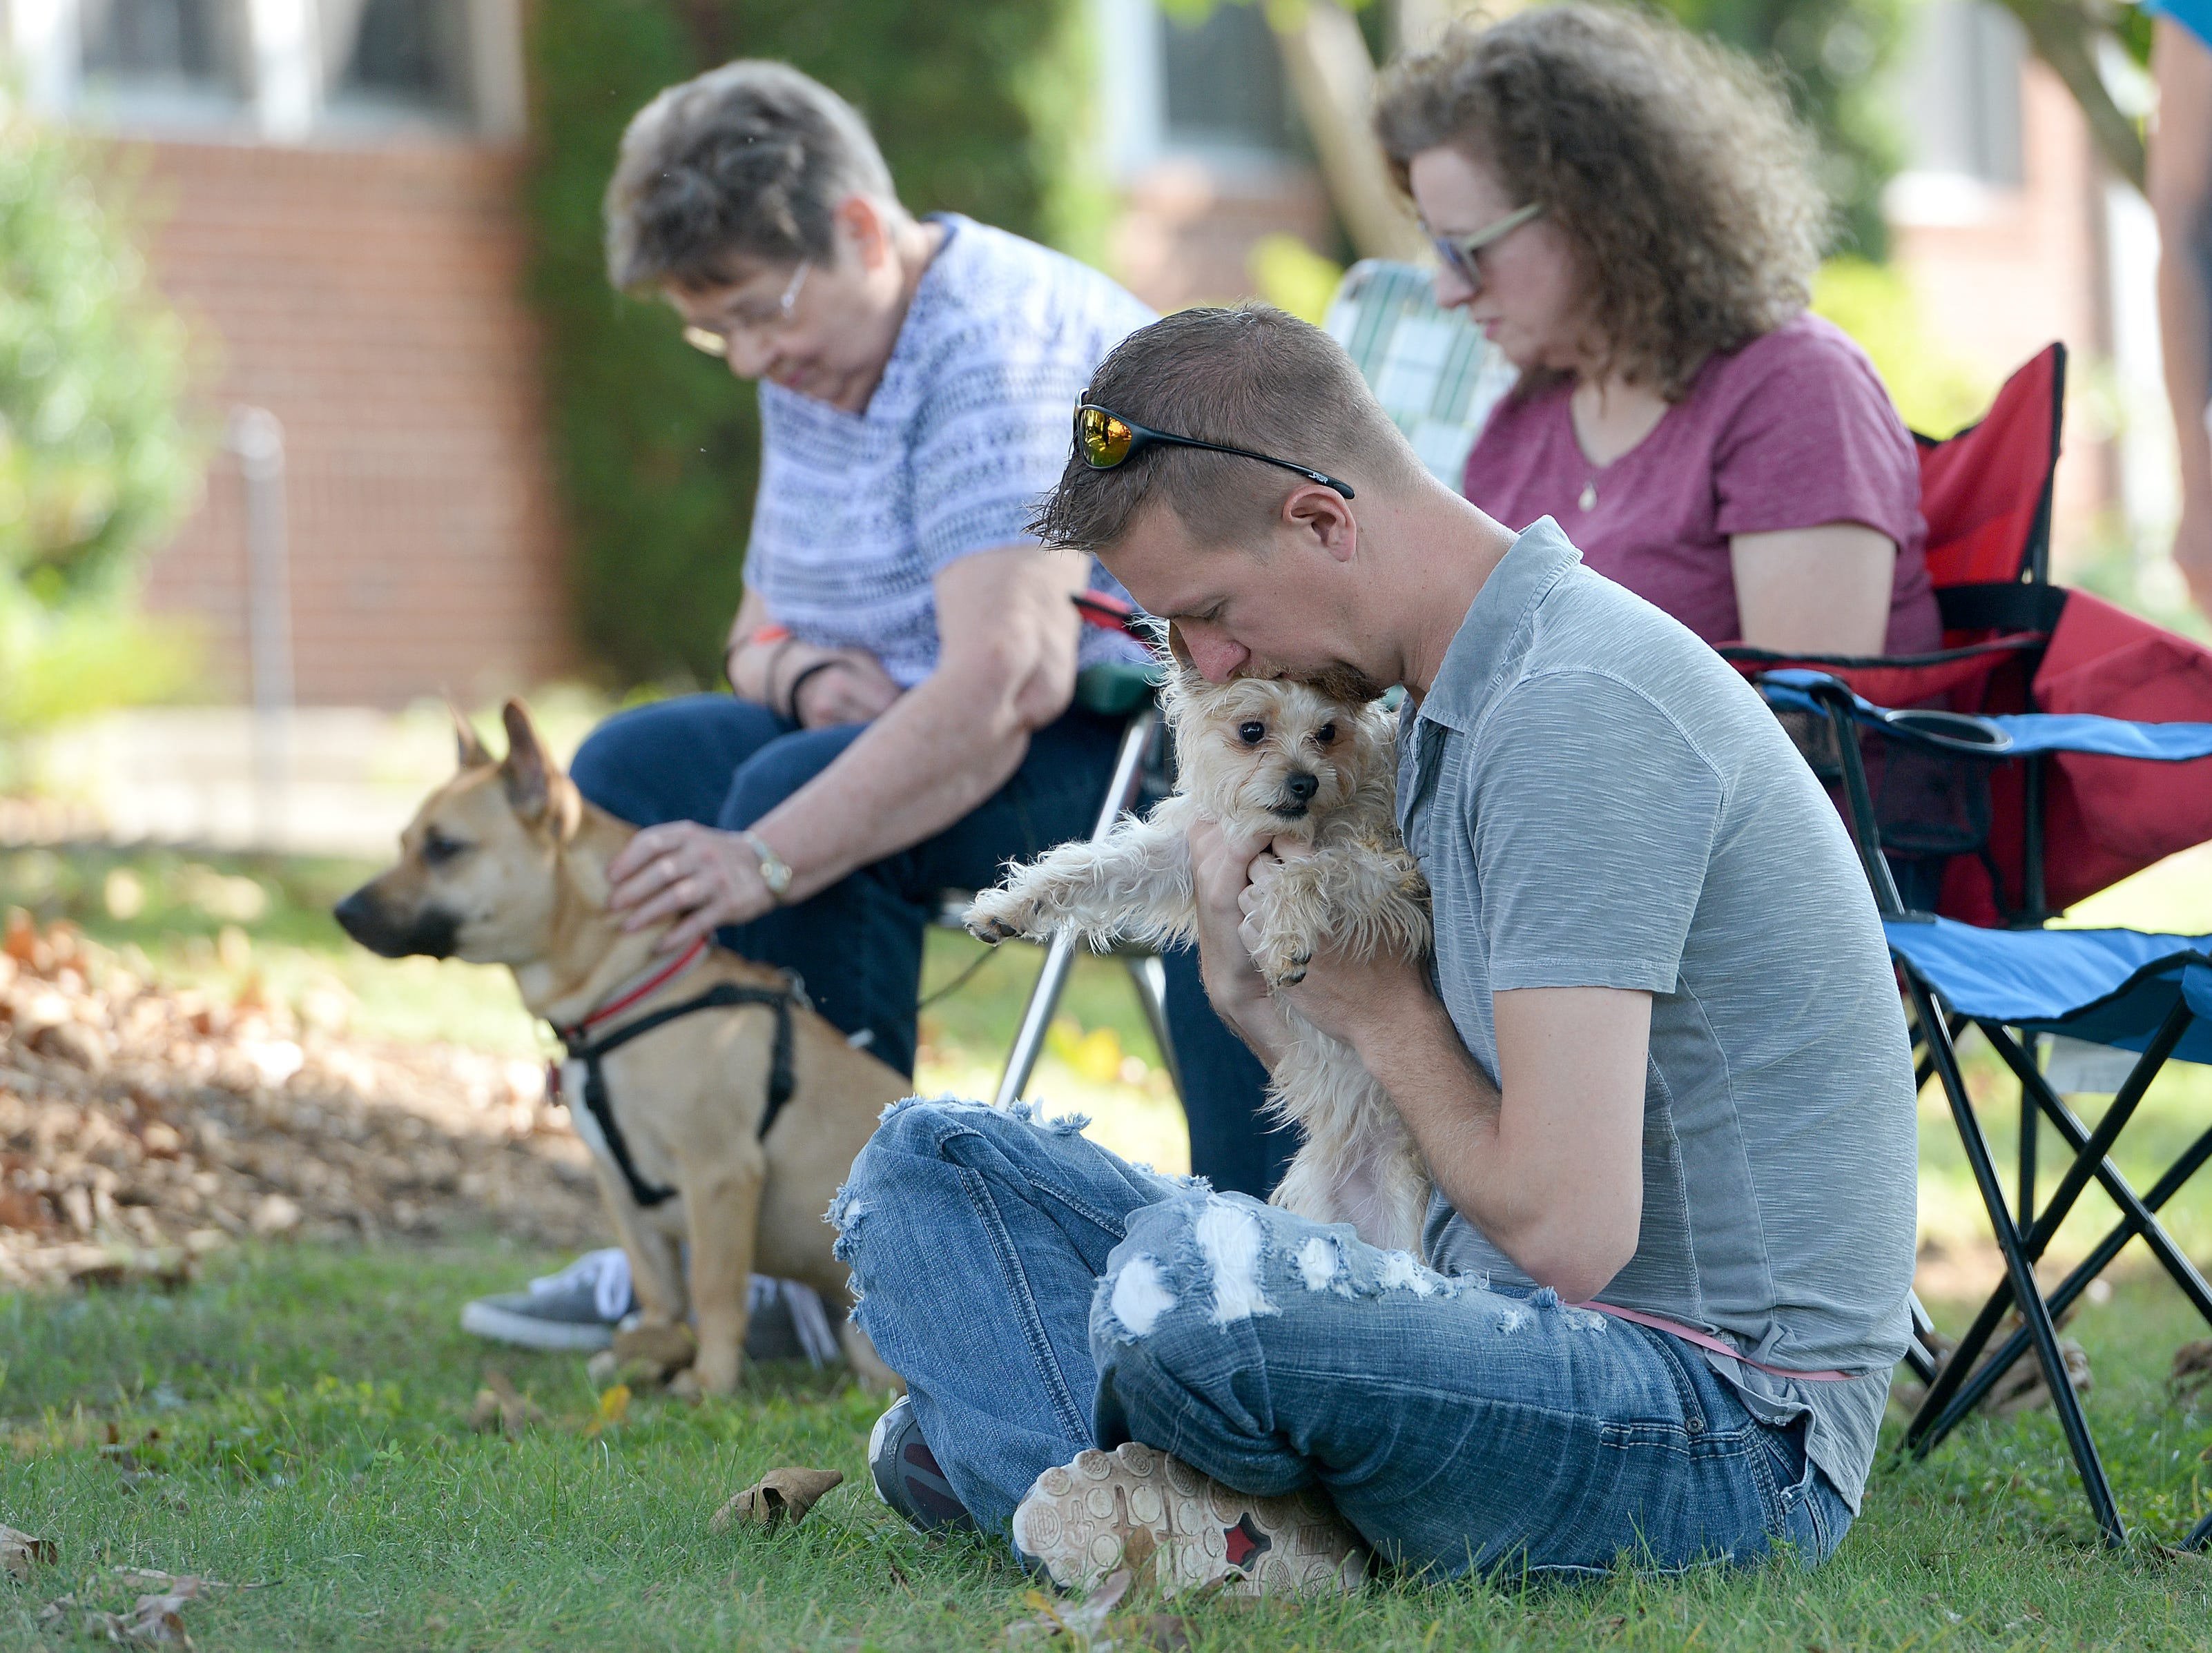 Kevin Fender bows his head in prayer and also gives his dog, Molly, a kiss during the 10th Annual Blessing of the Pets at Mills River Presbyterian Church on Sept. 8, 2018.